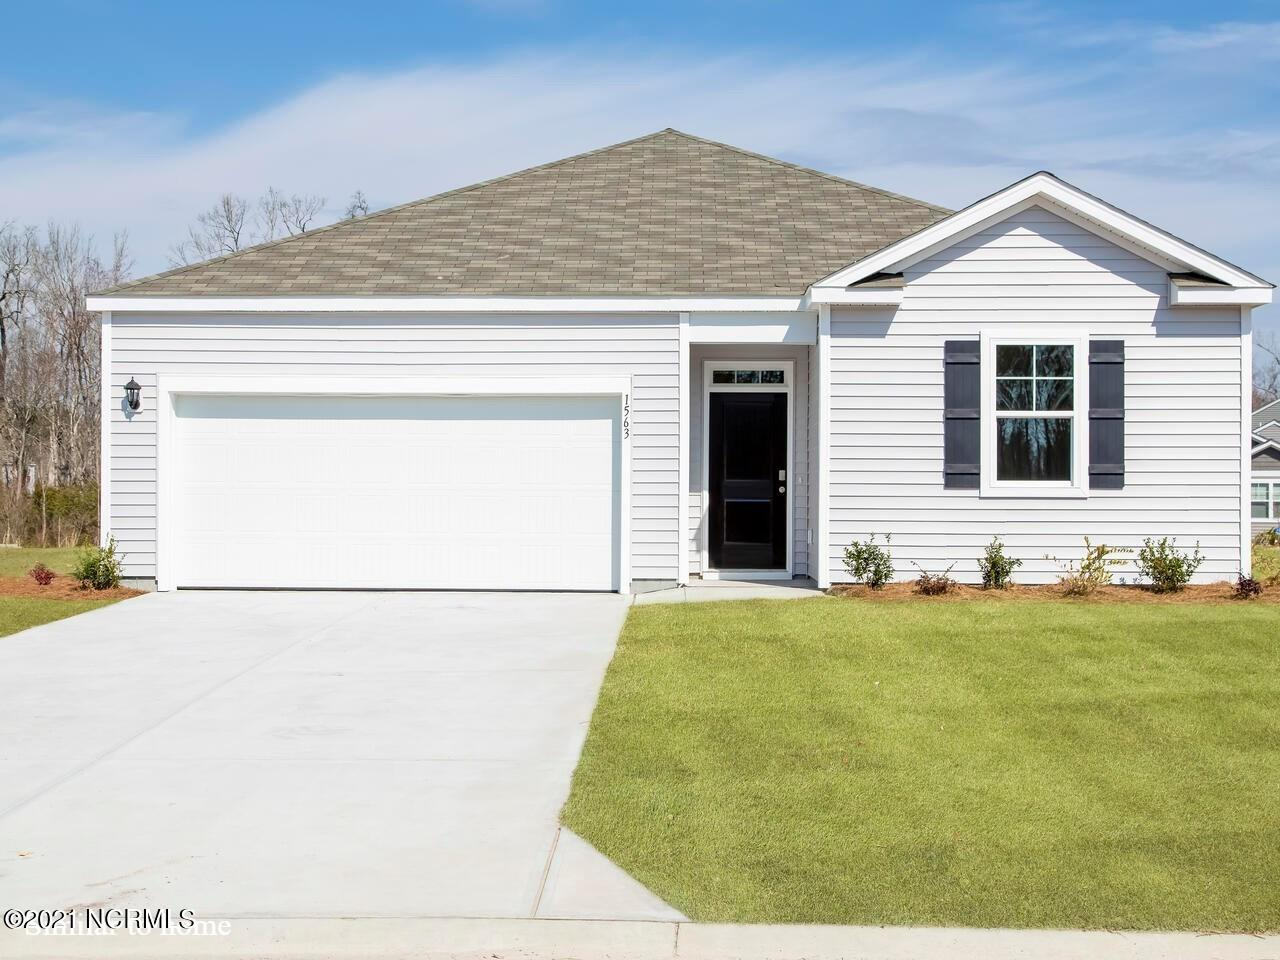 155 Windy Woods Way, Wilmington, North Carolina 28401, 3 Bedrooms Bedrooms, 6 Rooms Rooms,2 BathroomsBathrooms,Single family residence,For sale,Windy Woods,100274720